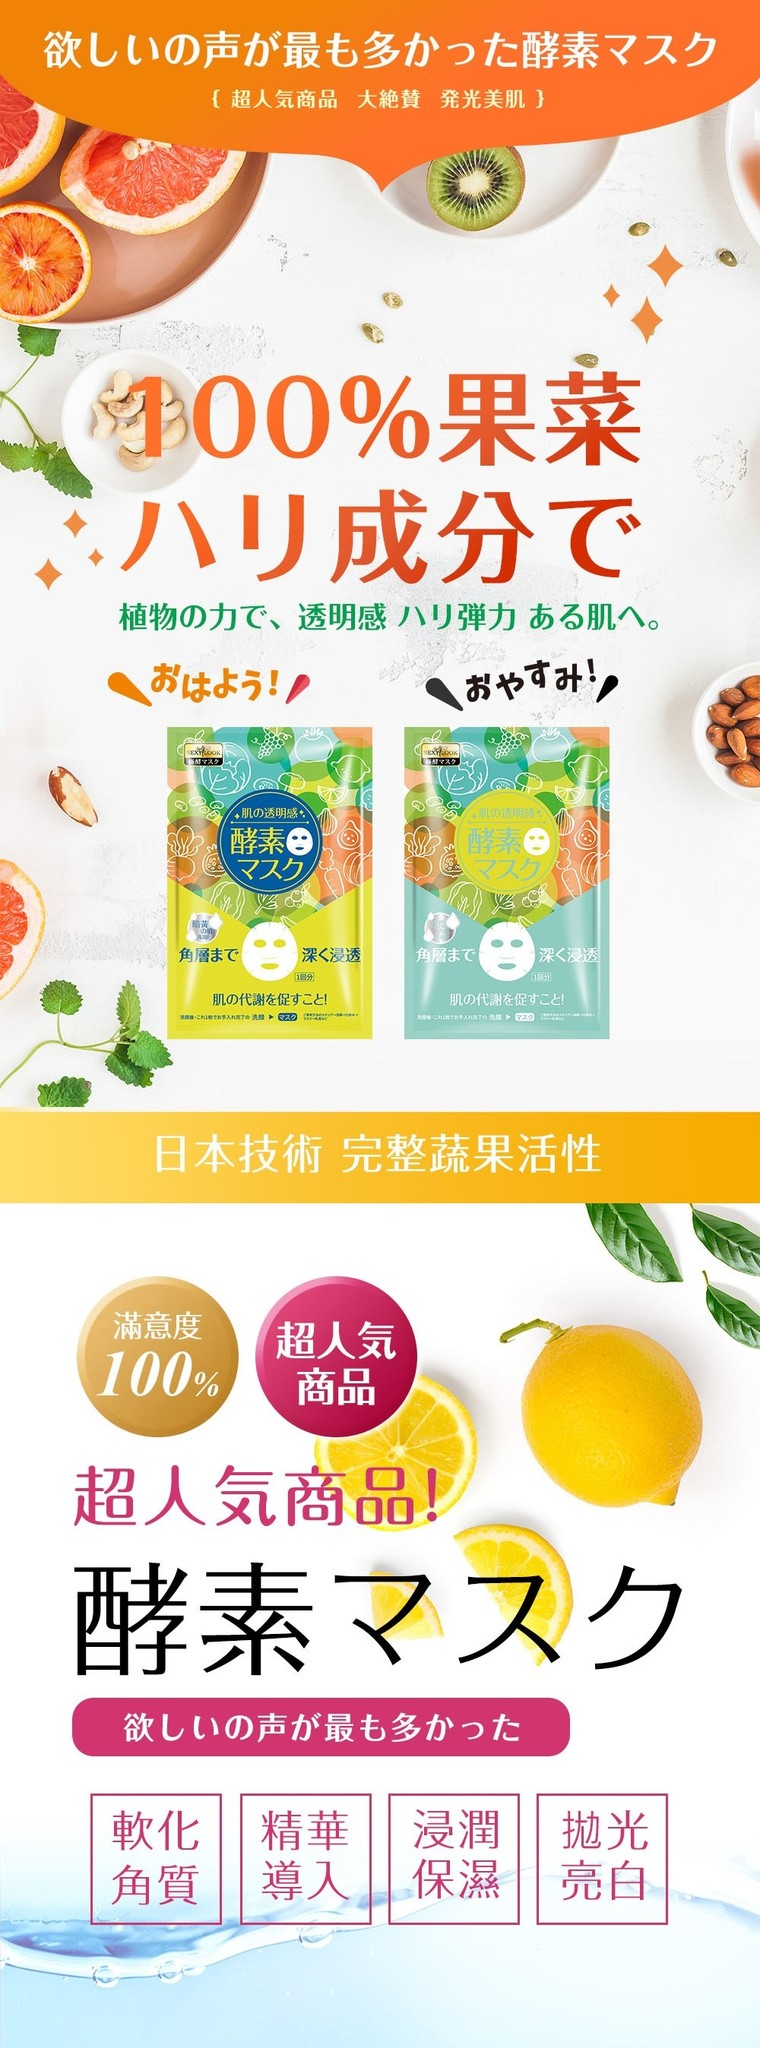 Enzyme Whitening Facial Mask-7